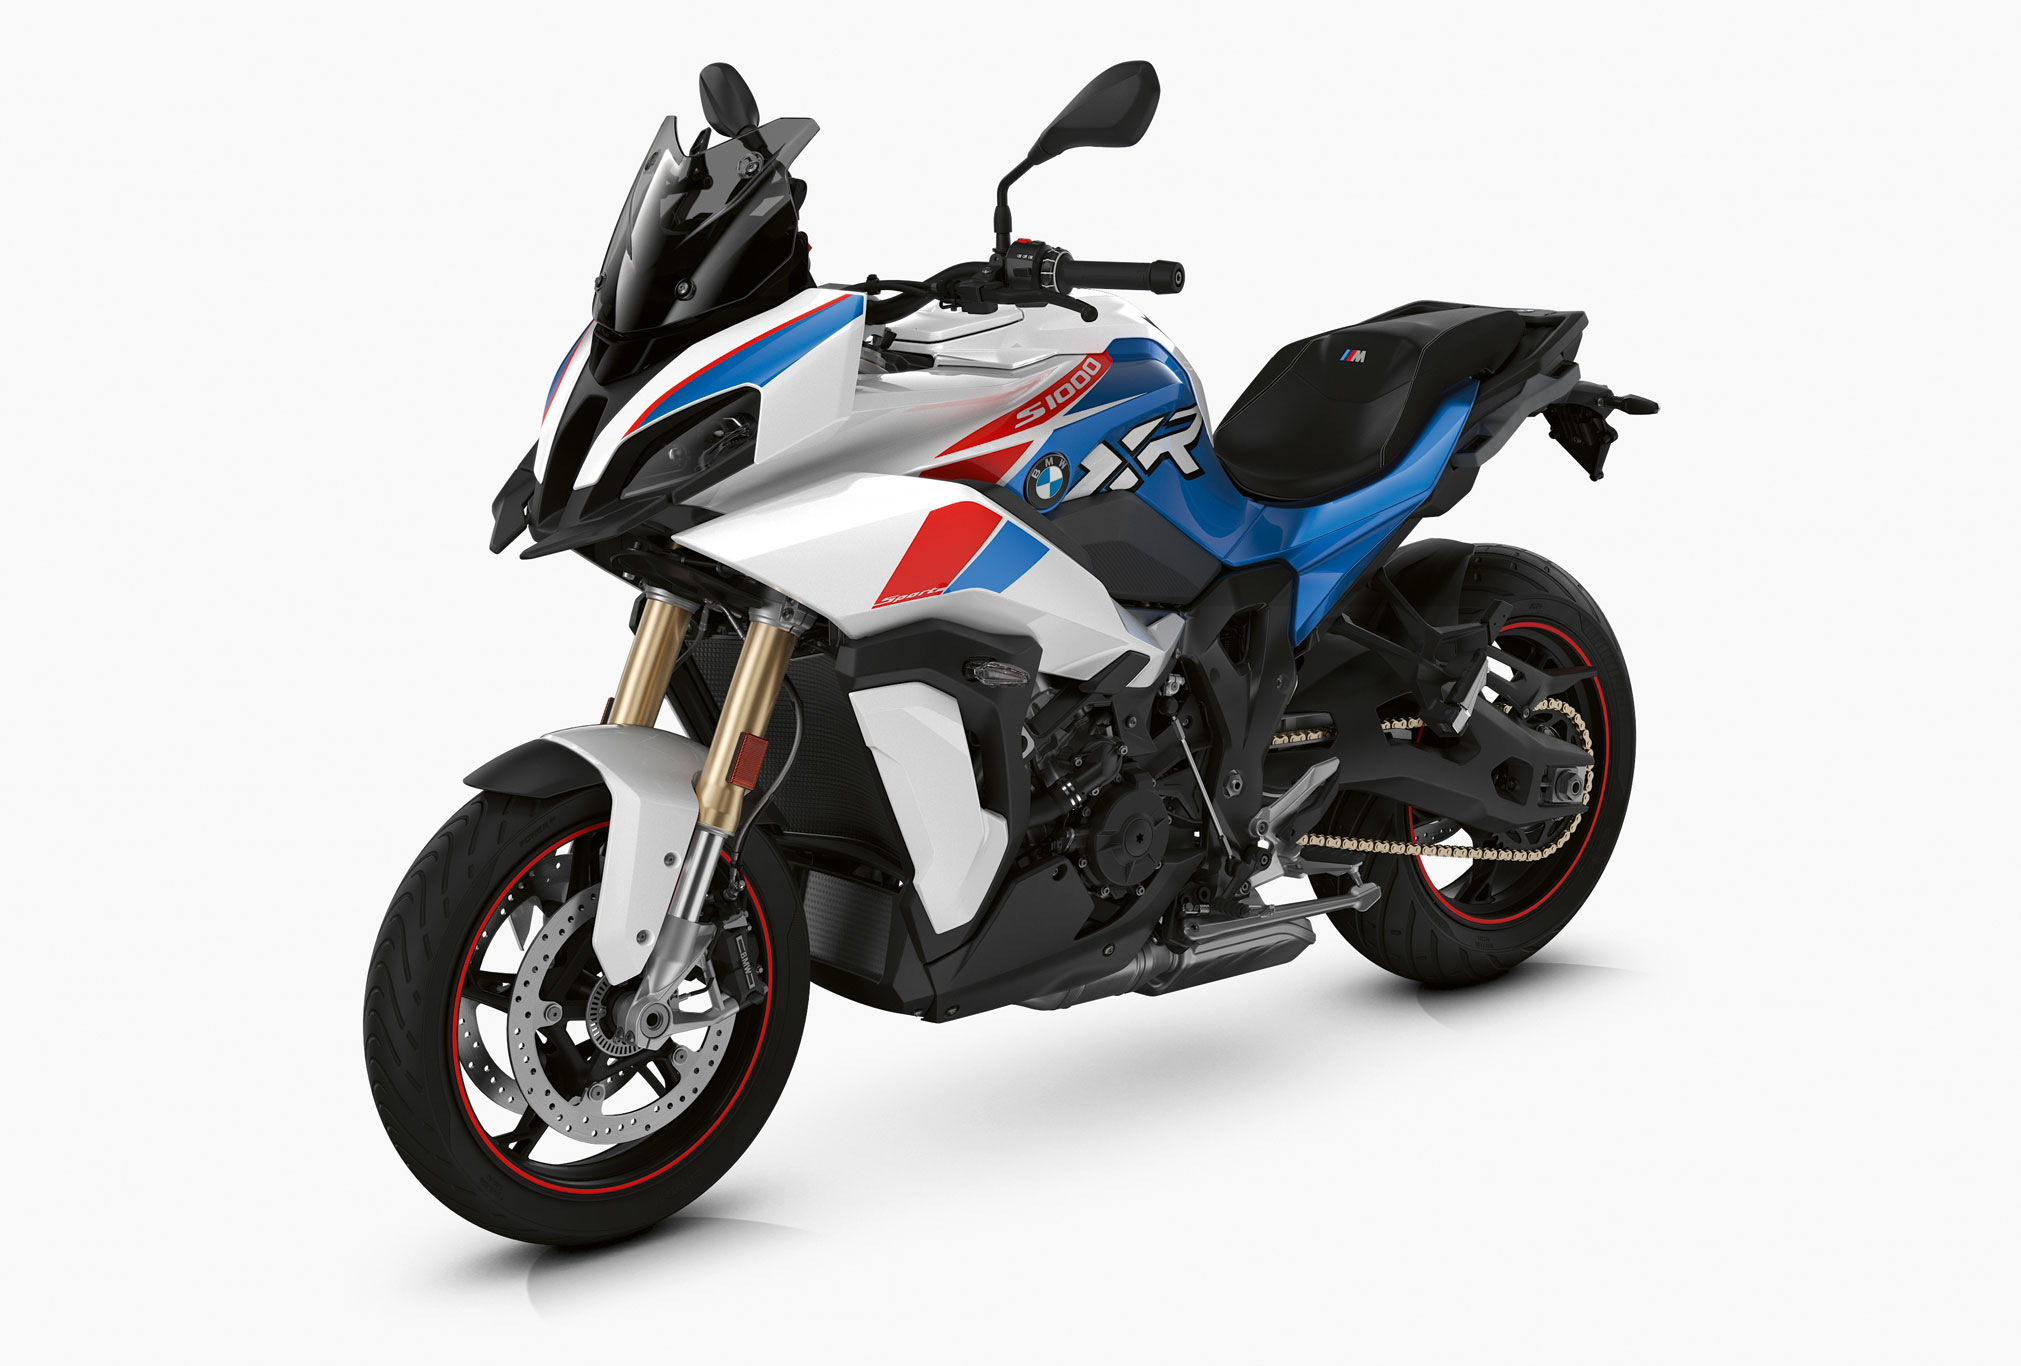 2021 BMW S1000XR Guide • Total Motorcycle